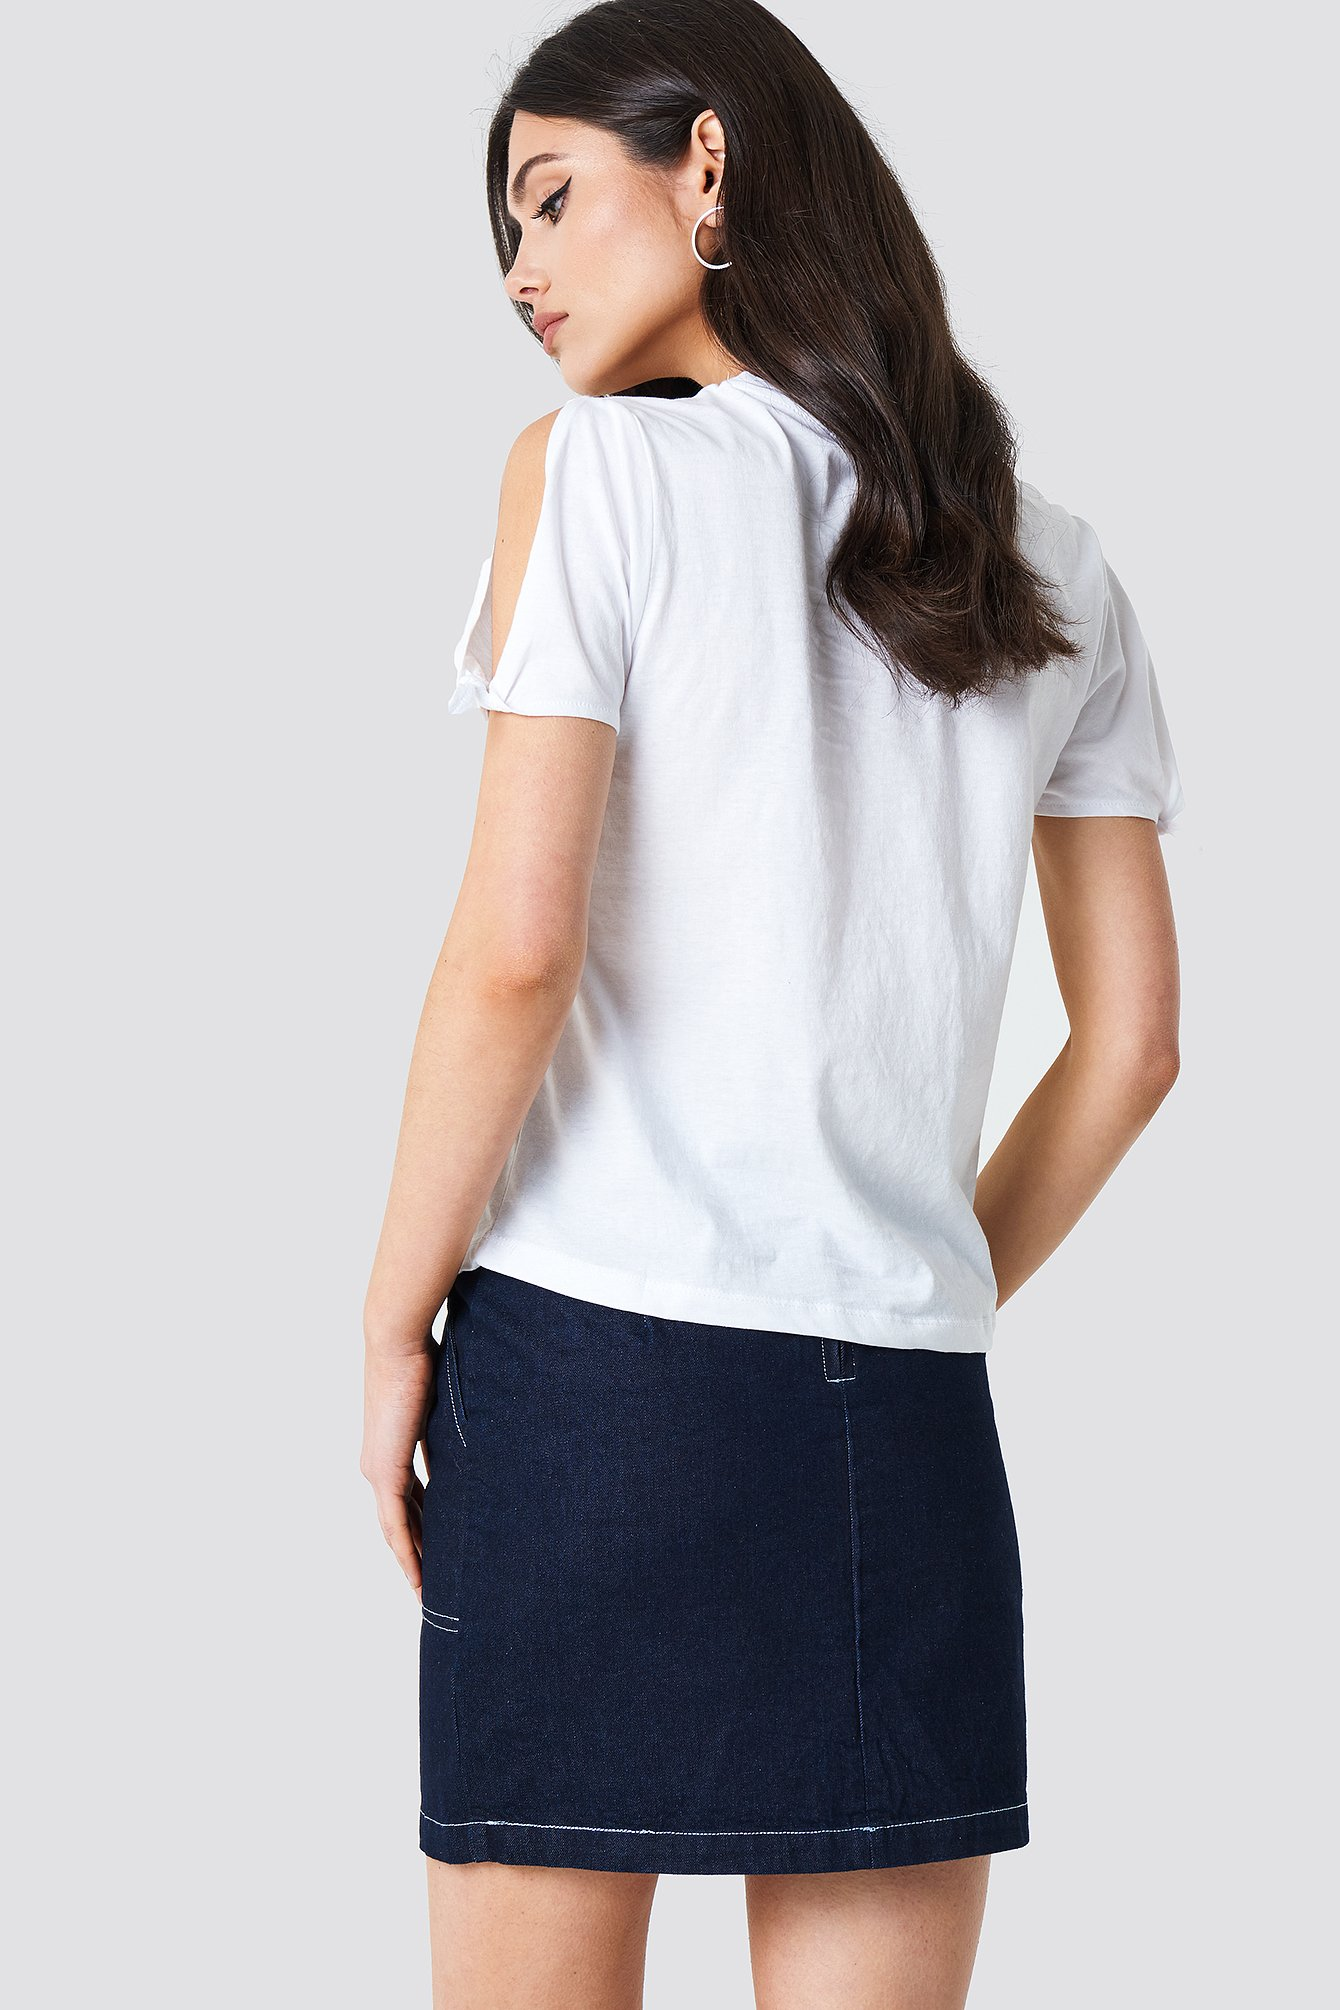 White Bows Sleeve T-Shirt